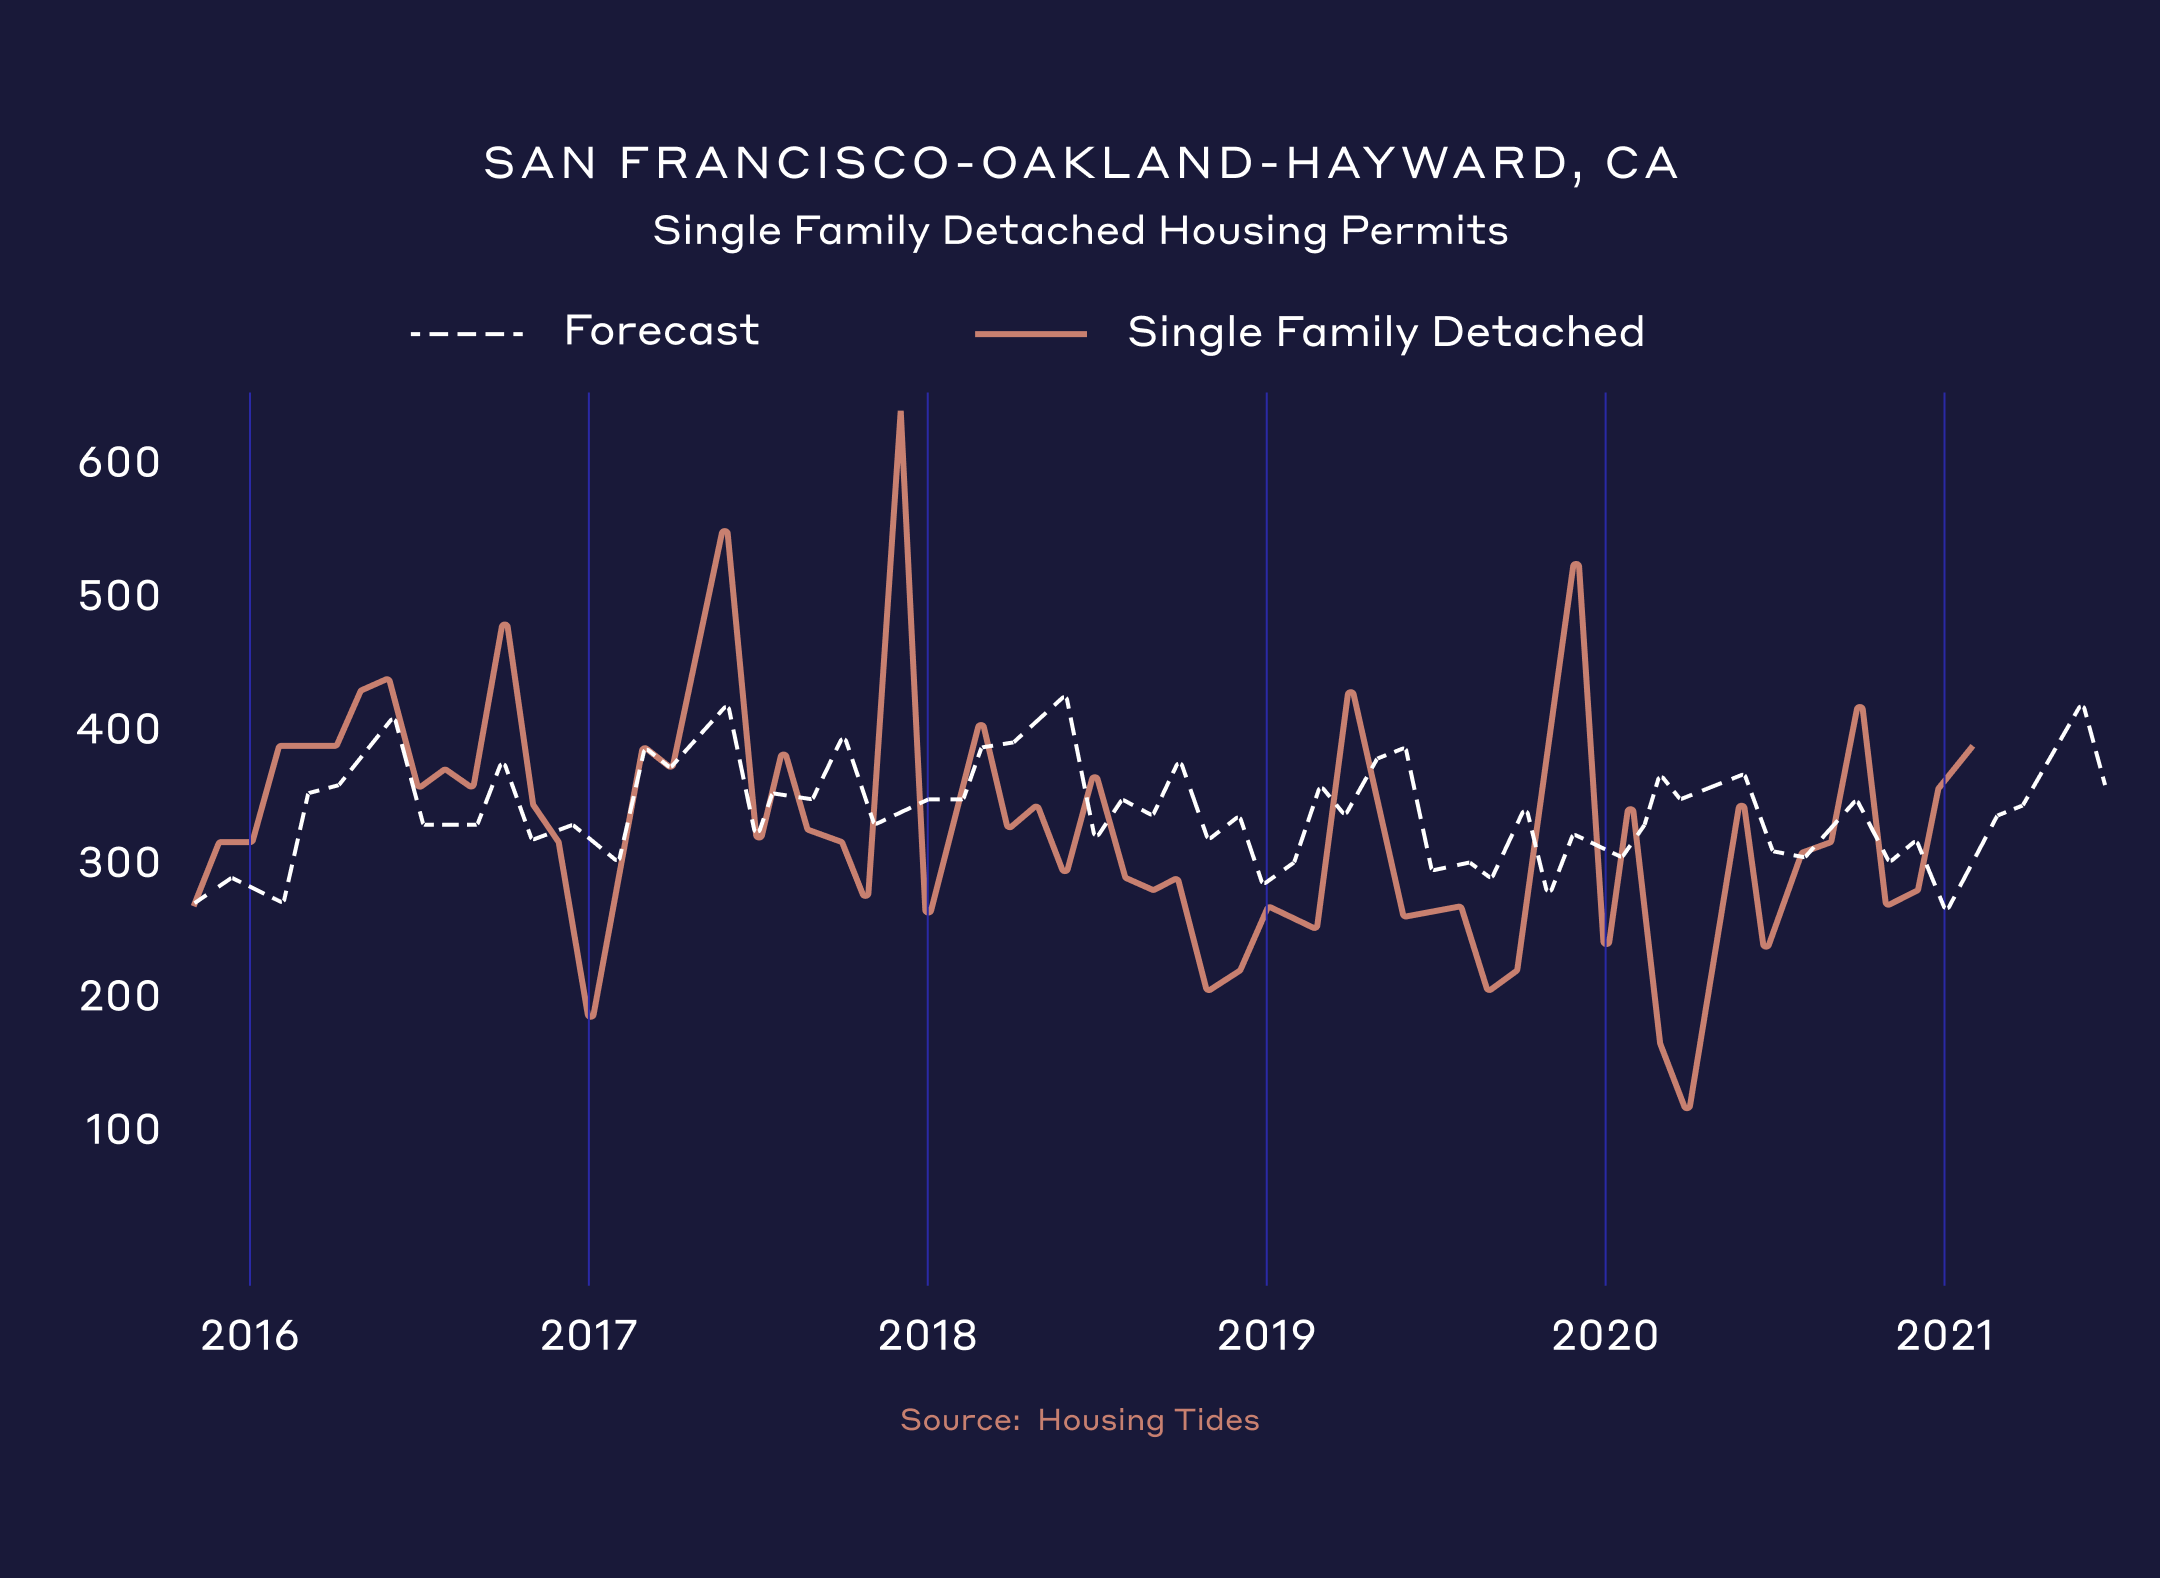 single family housing permits have been issued faster than forecast.